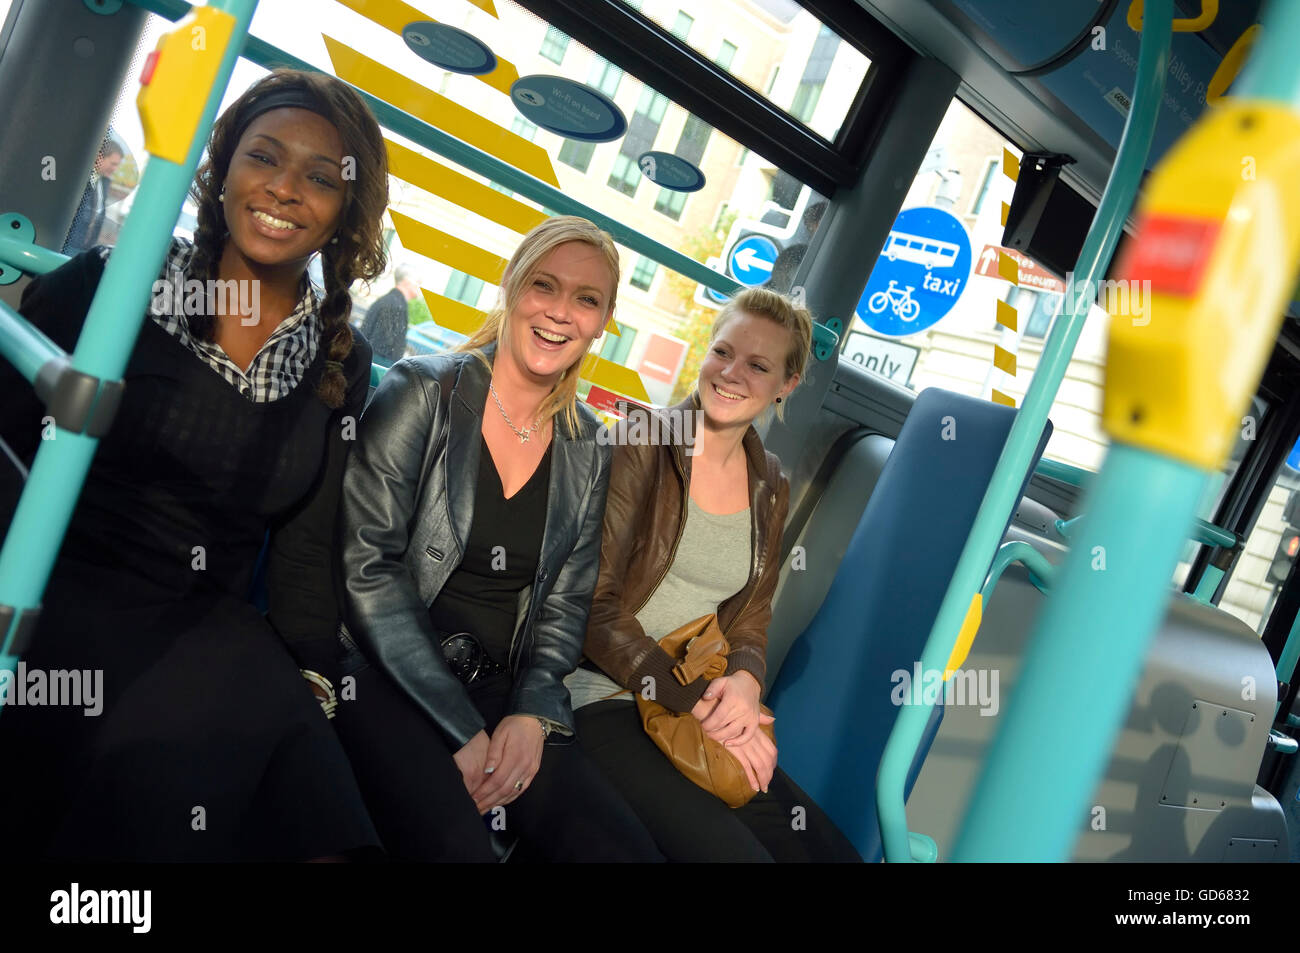 A group of women traveling on a bus. England. UK - Stock Image